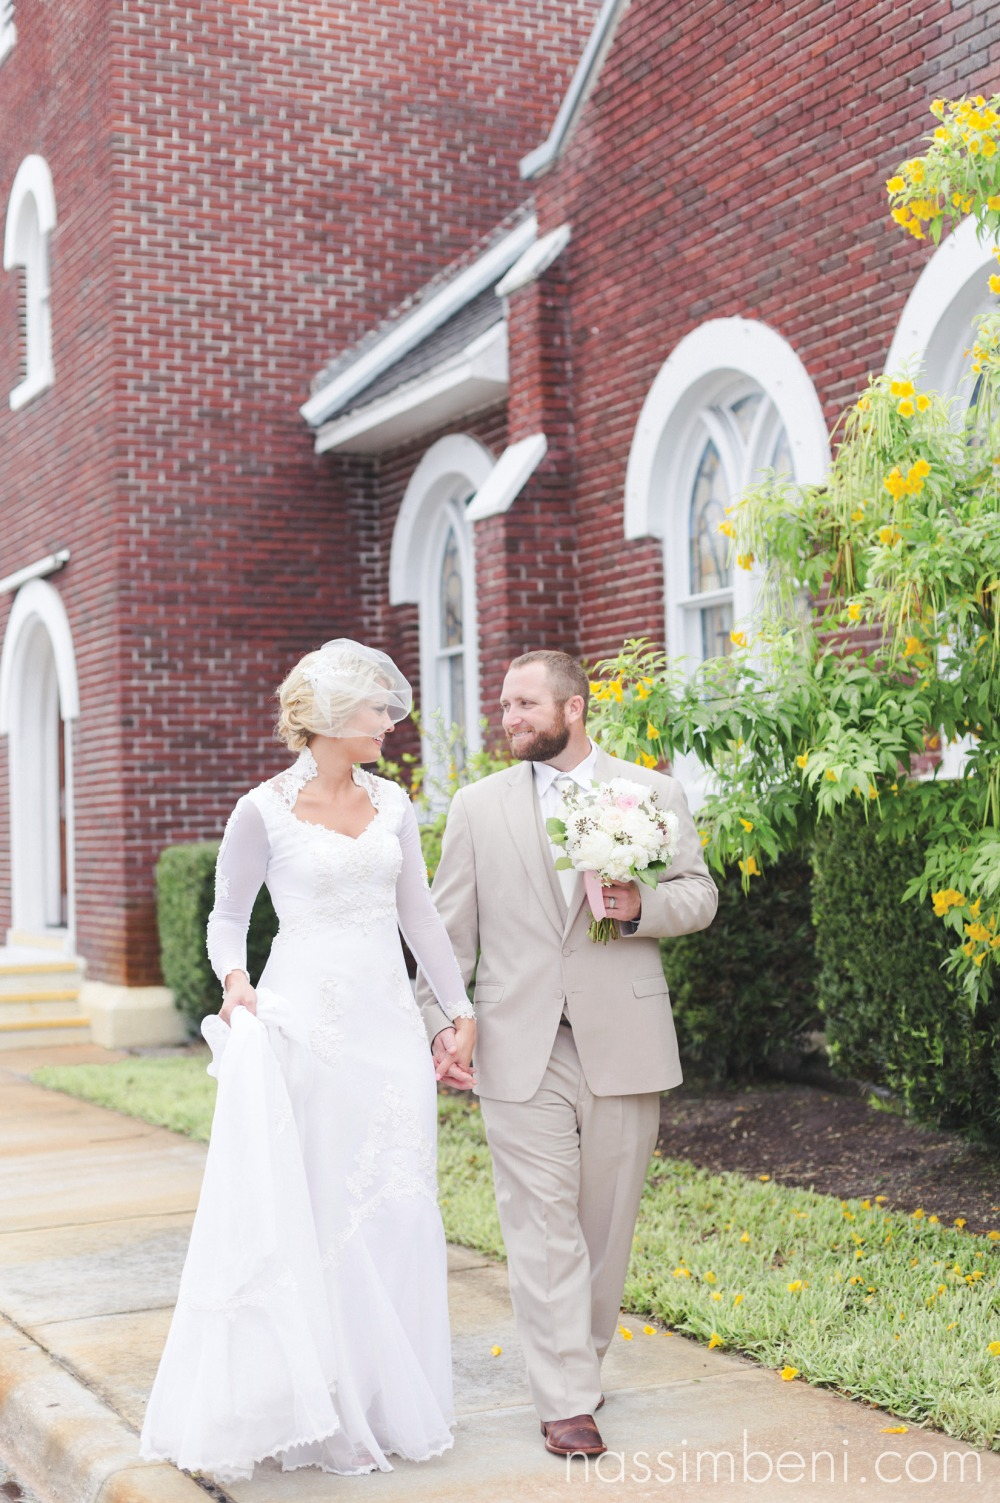 bride and groom walk in front of first united methodist church in okeechobee florida by nassimbeni photography